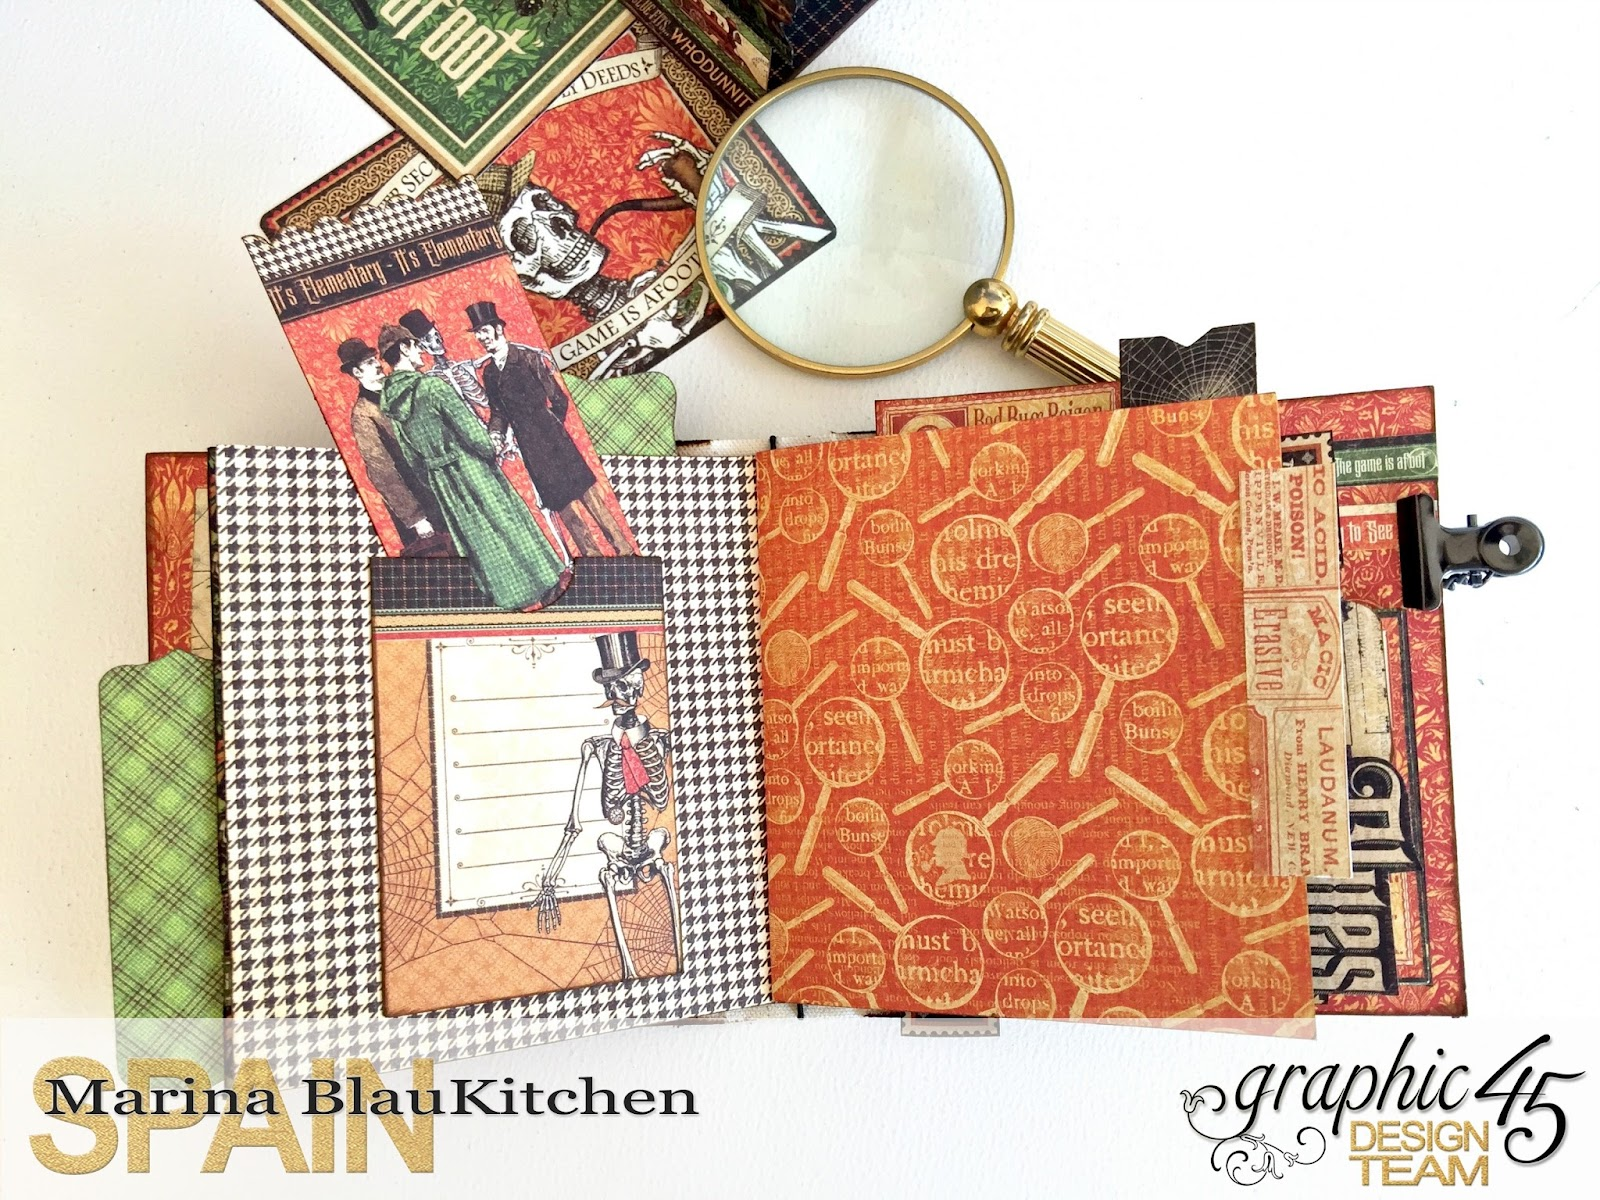 Stand and Mini Album Master Detective by Marina Blaukitchen Product by Graphic 45 photo 18.jpg